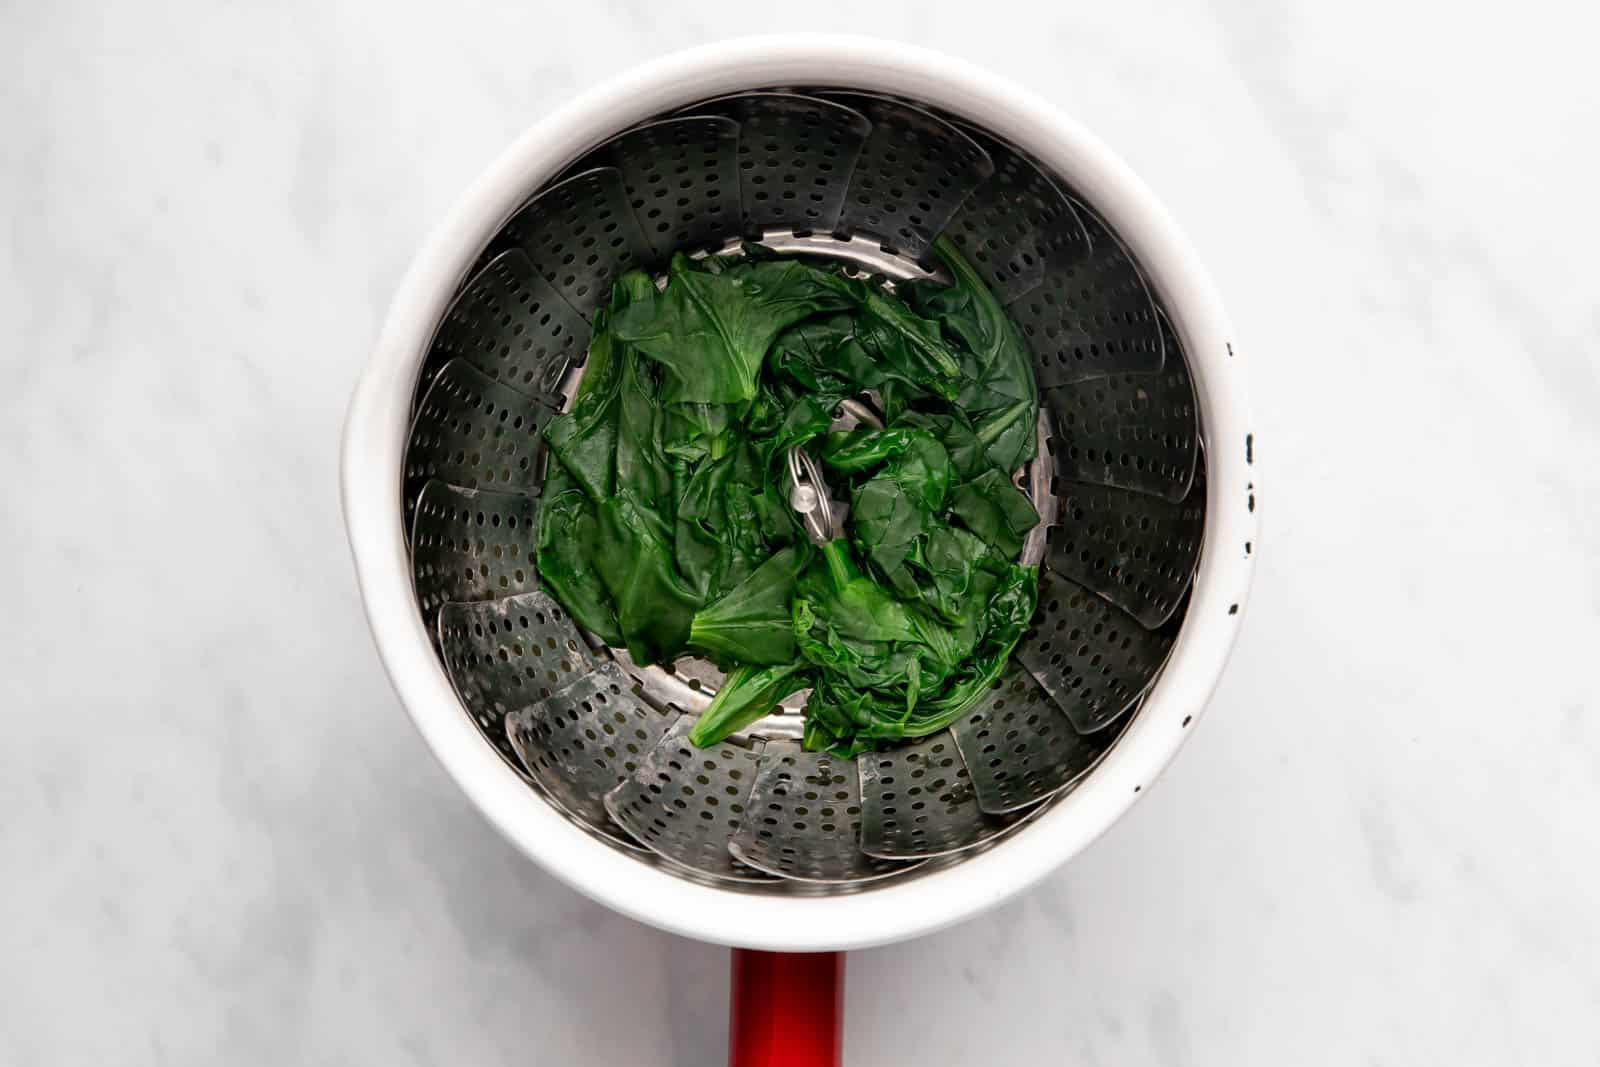 Steaming spinach in a steamer basket till it wilts